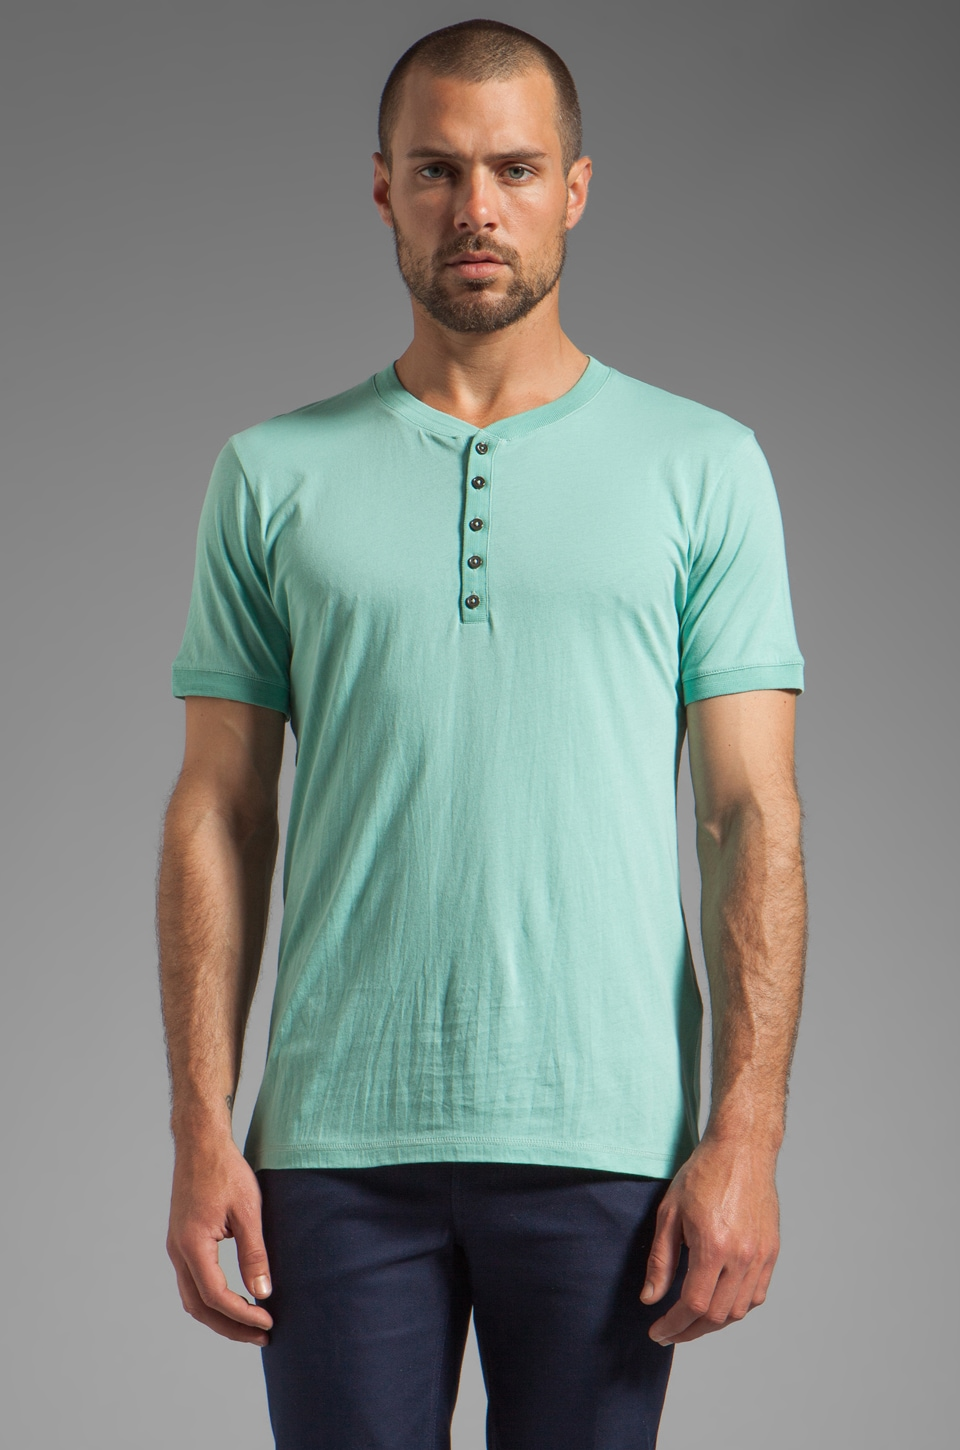 Closed Short Sleeve Henley Light Jersey Tee in Soft Mint